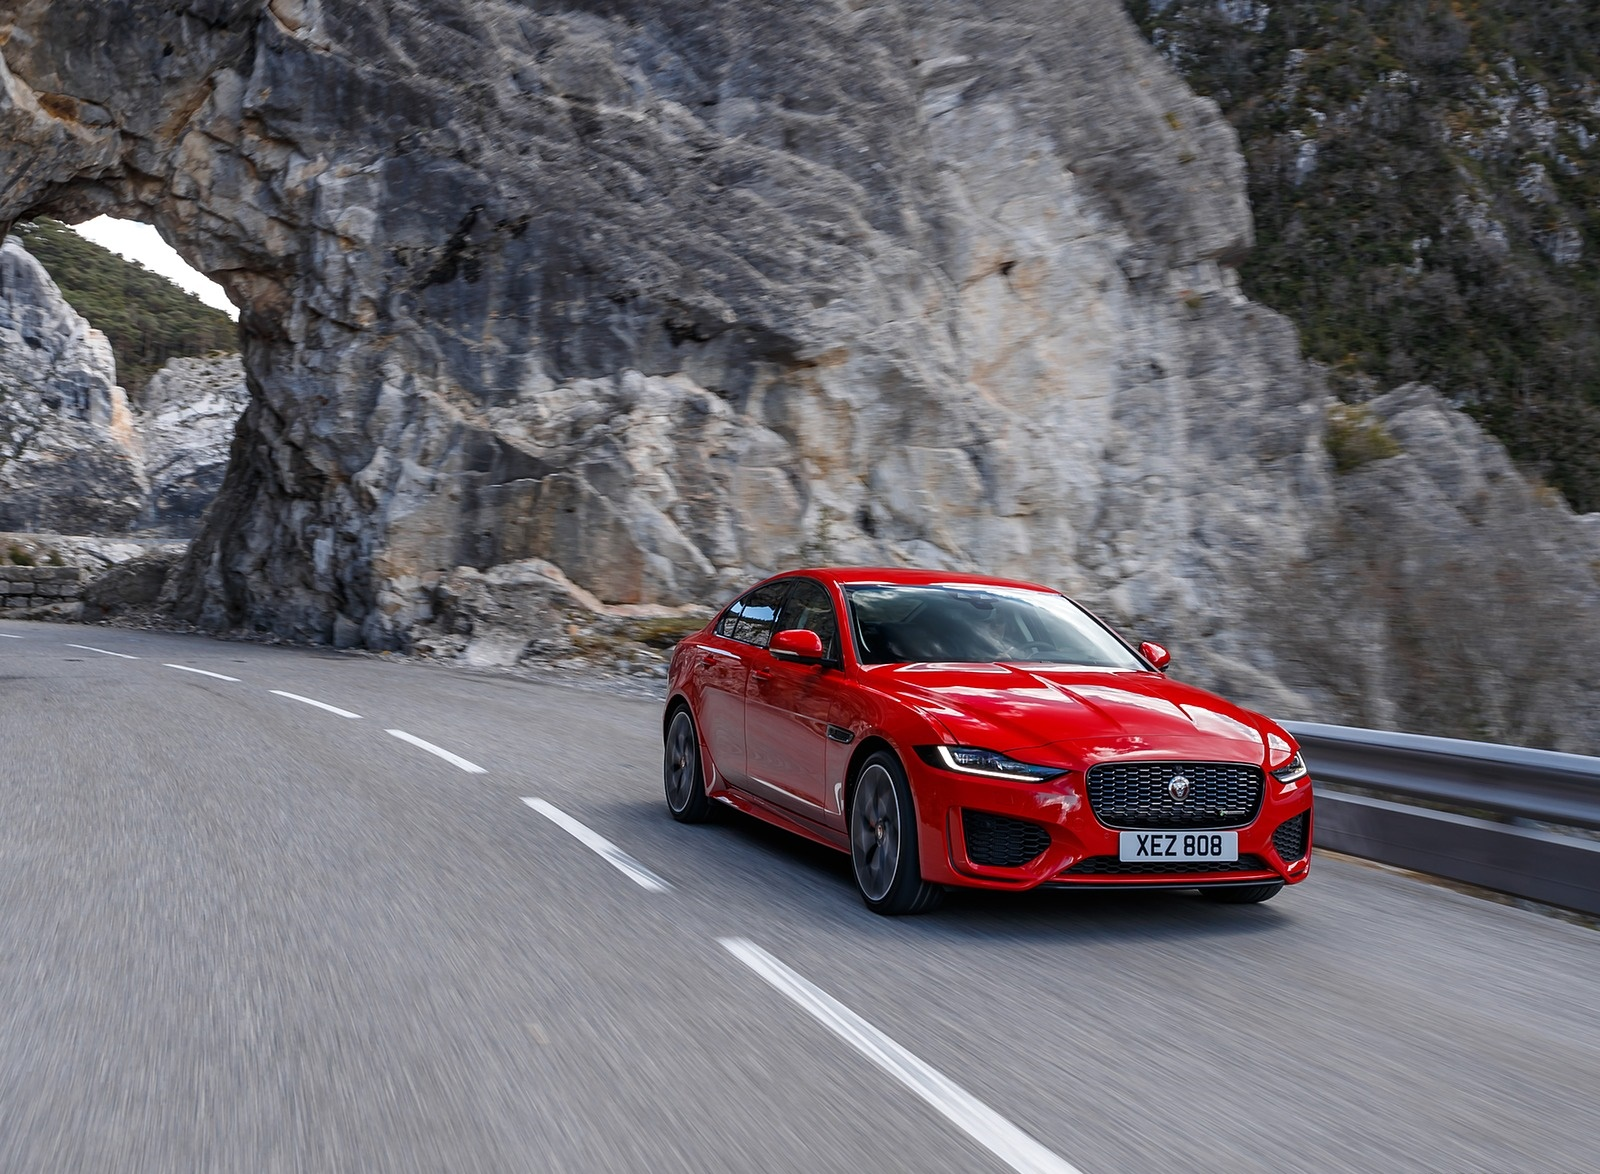 2020 Jaguar XE S R-Dynamic P300 (Color: Caldera Red) Front Three-Quarter Wallpapers (2)